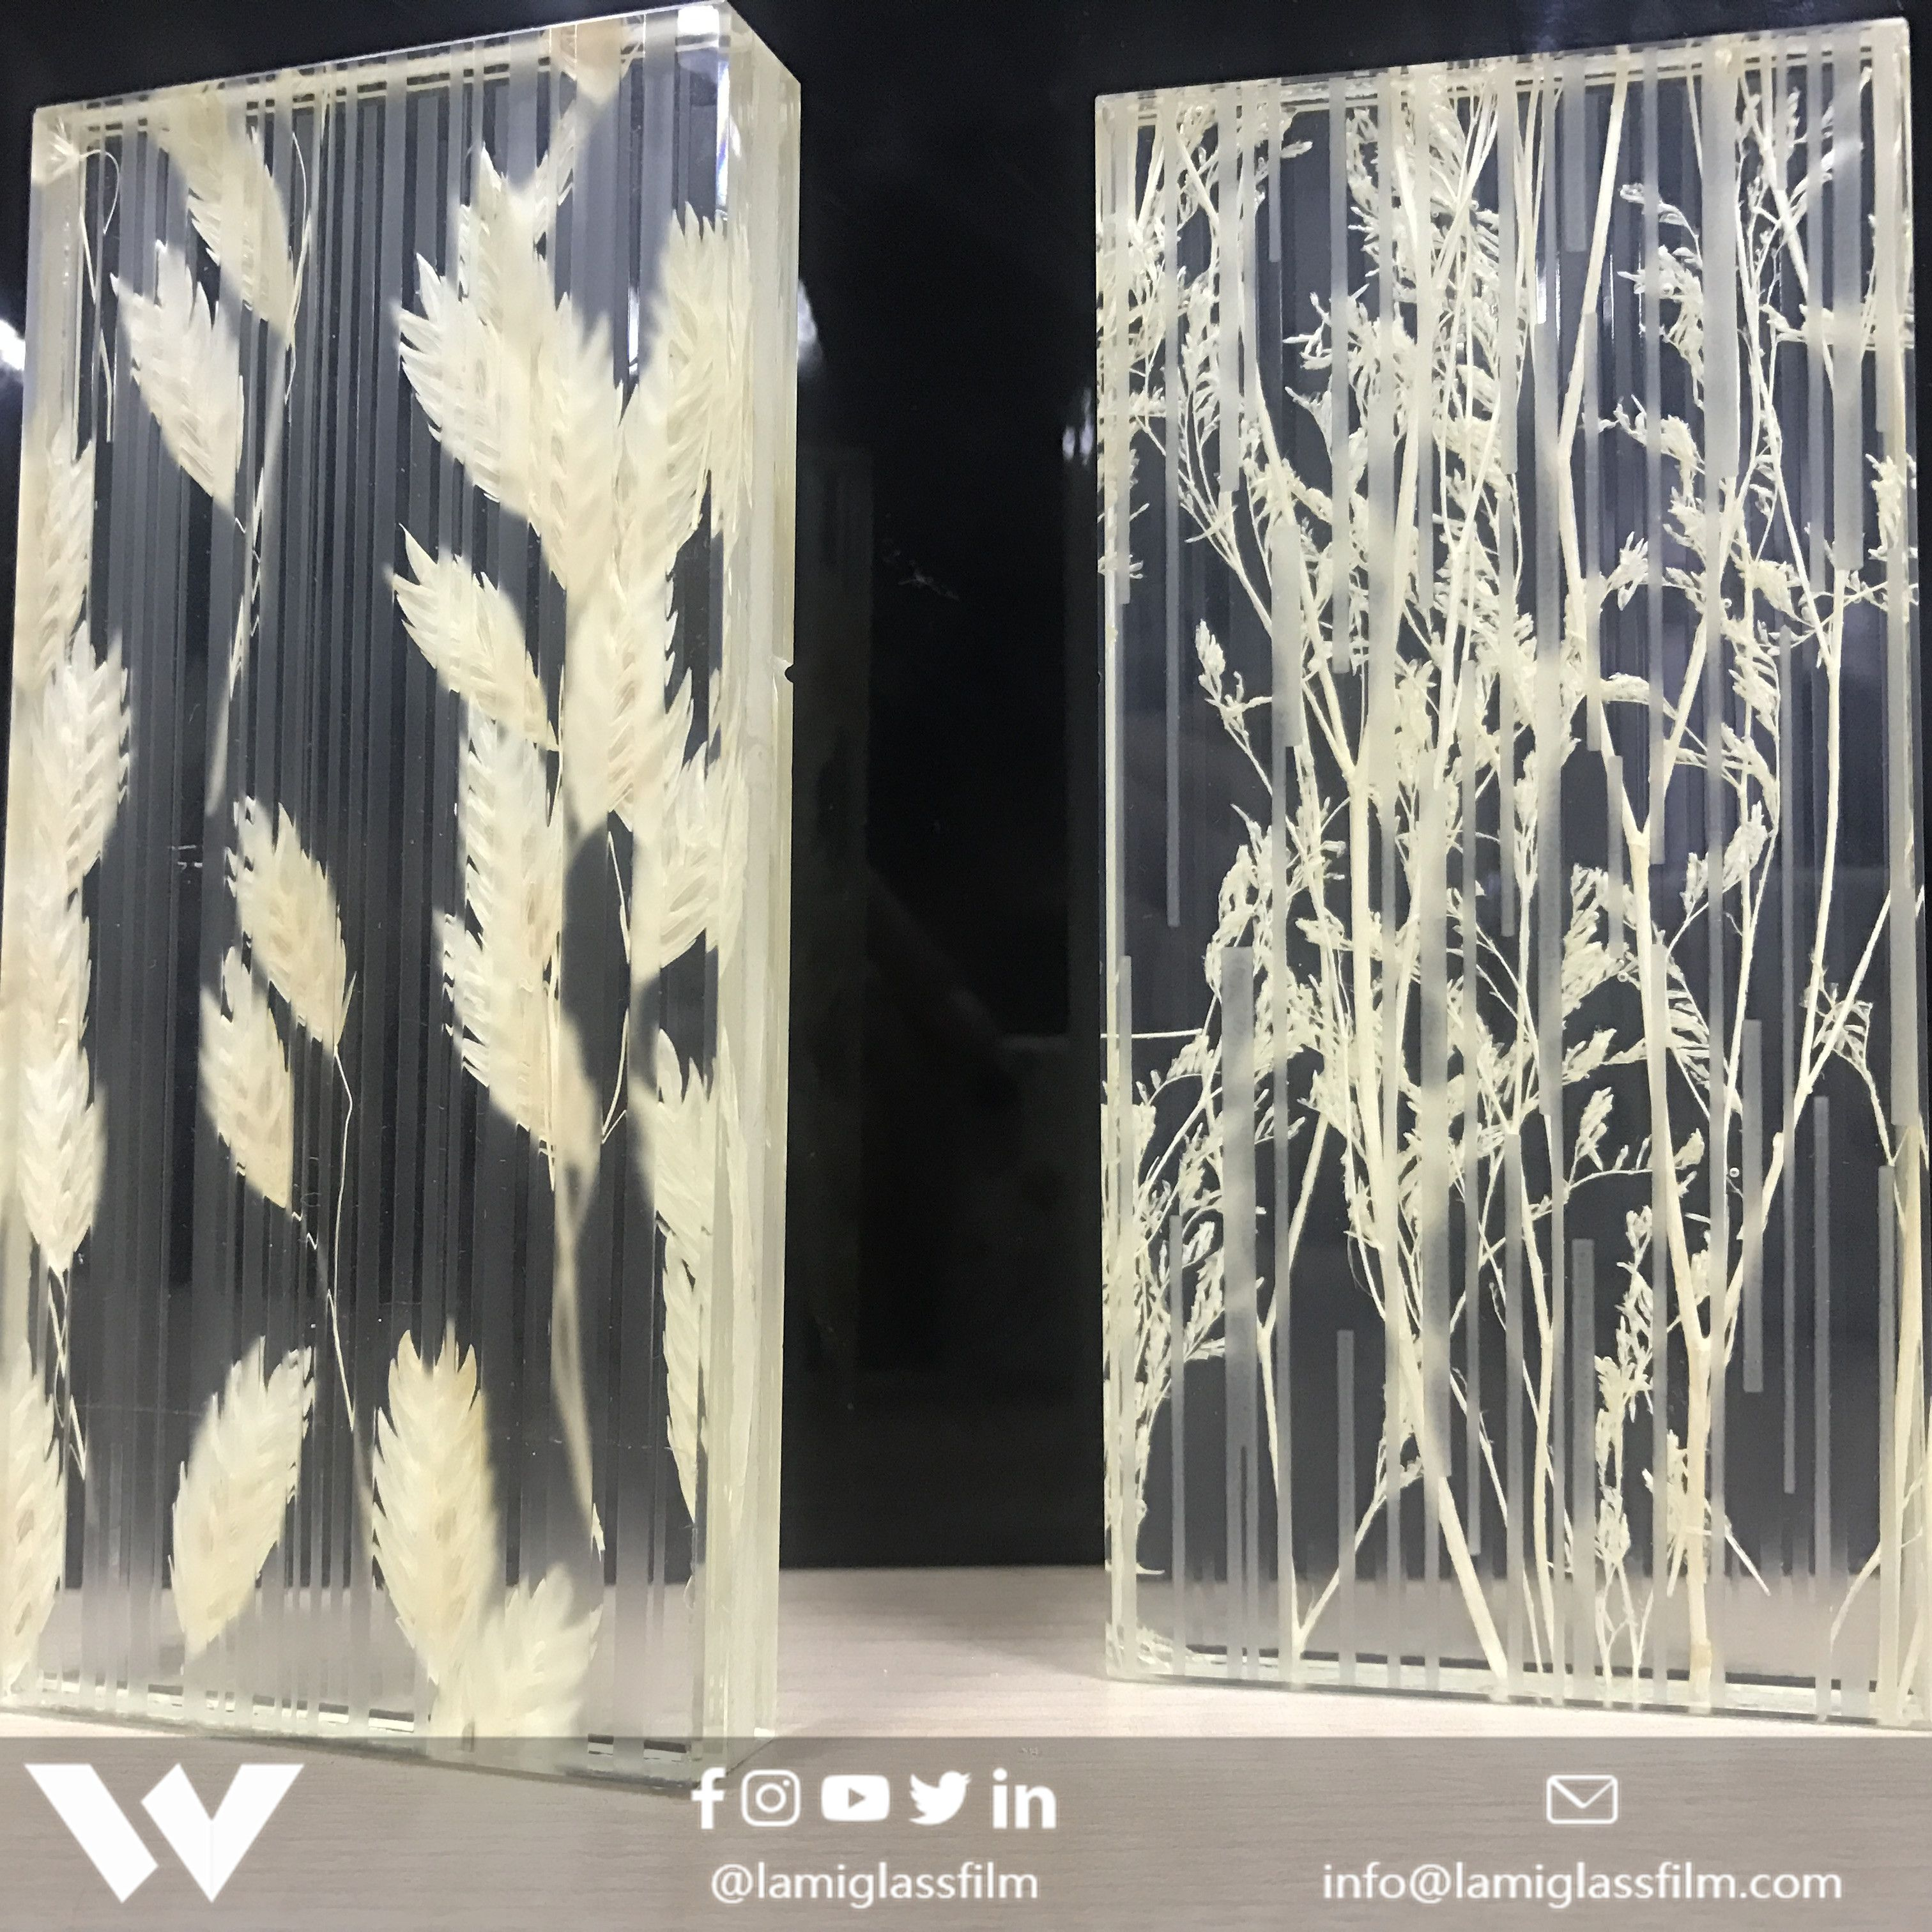 How Beautiful Plant Laminated Glass We Can Provide You High Quality Inserts And Eva Film If You Are A Glass Processor Laminated Glass Glass Safety Glass